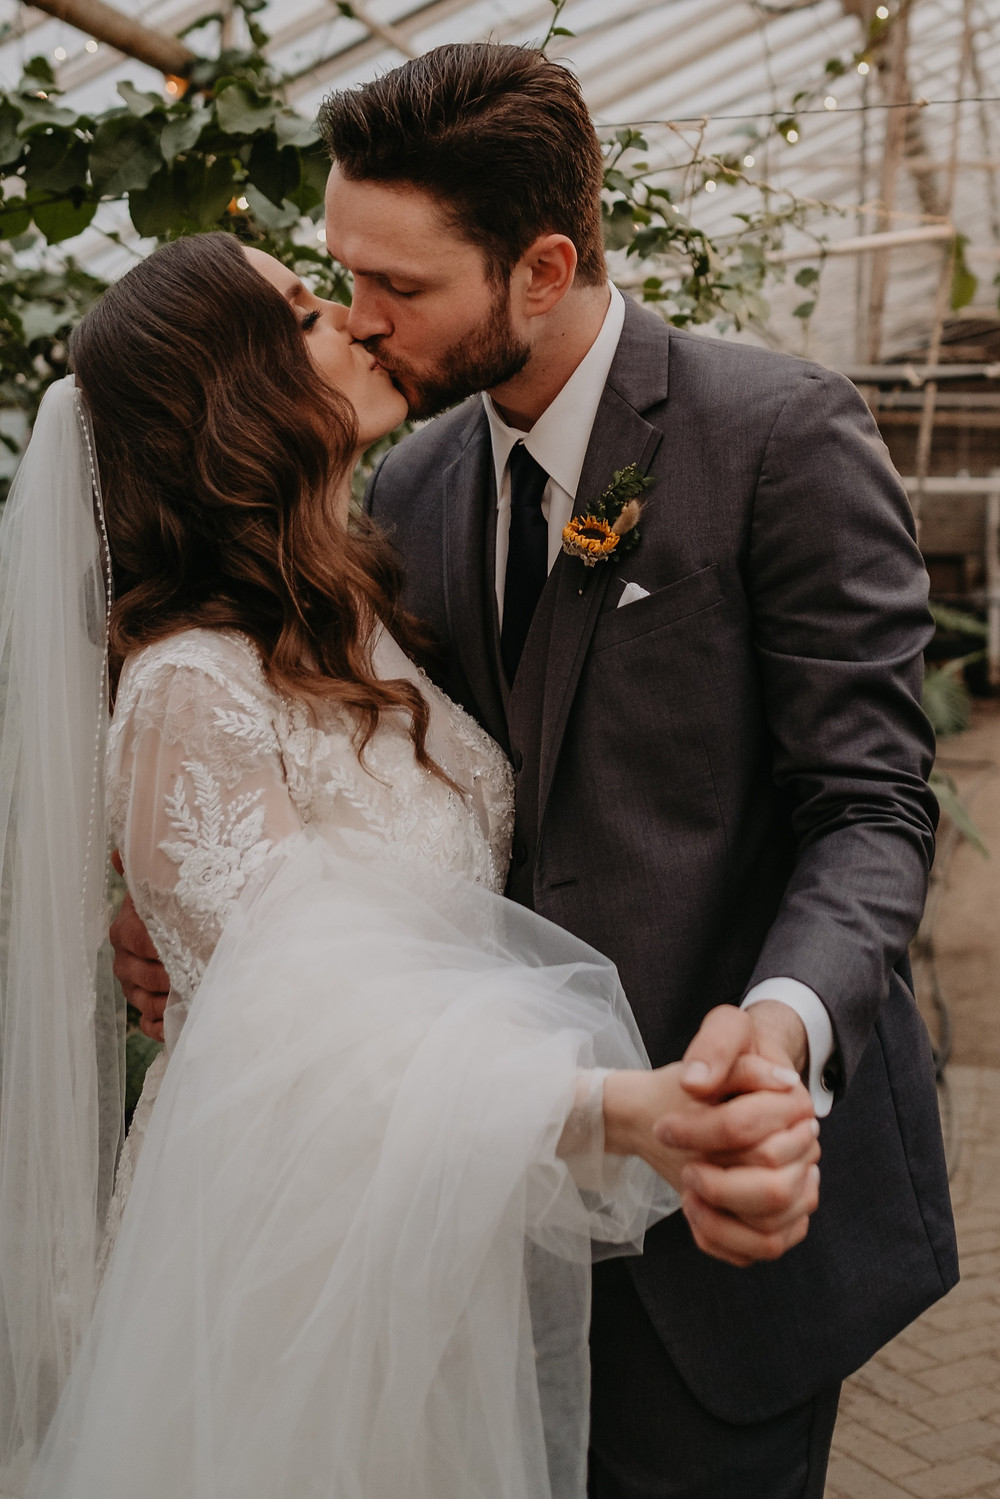 Bride and groom at Metro Detroit wedding. Photographed by Nicole Leanne Photography.